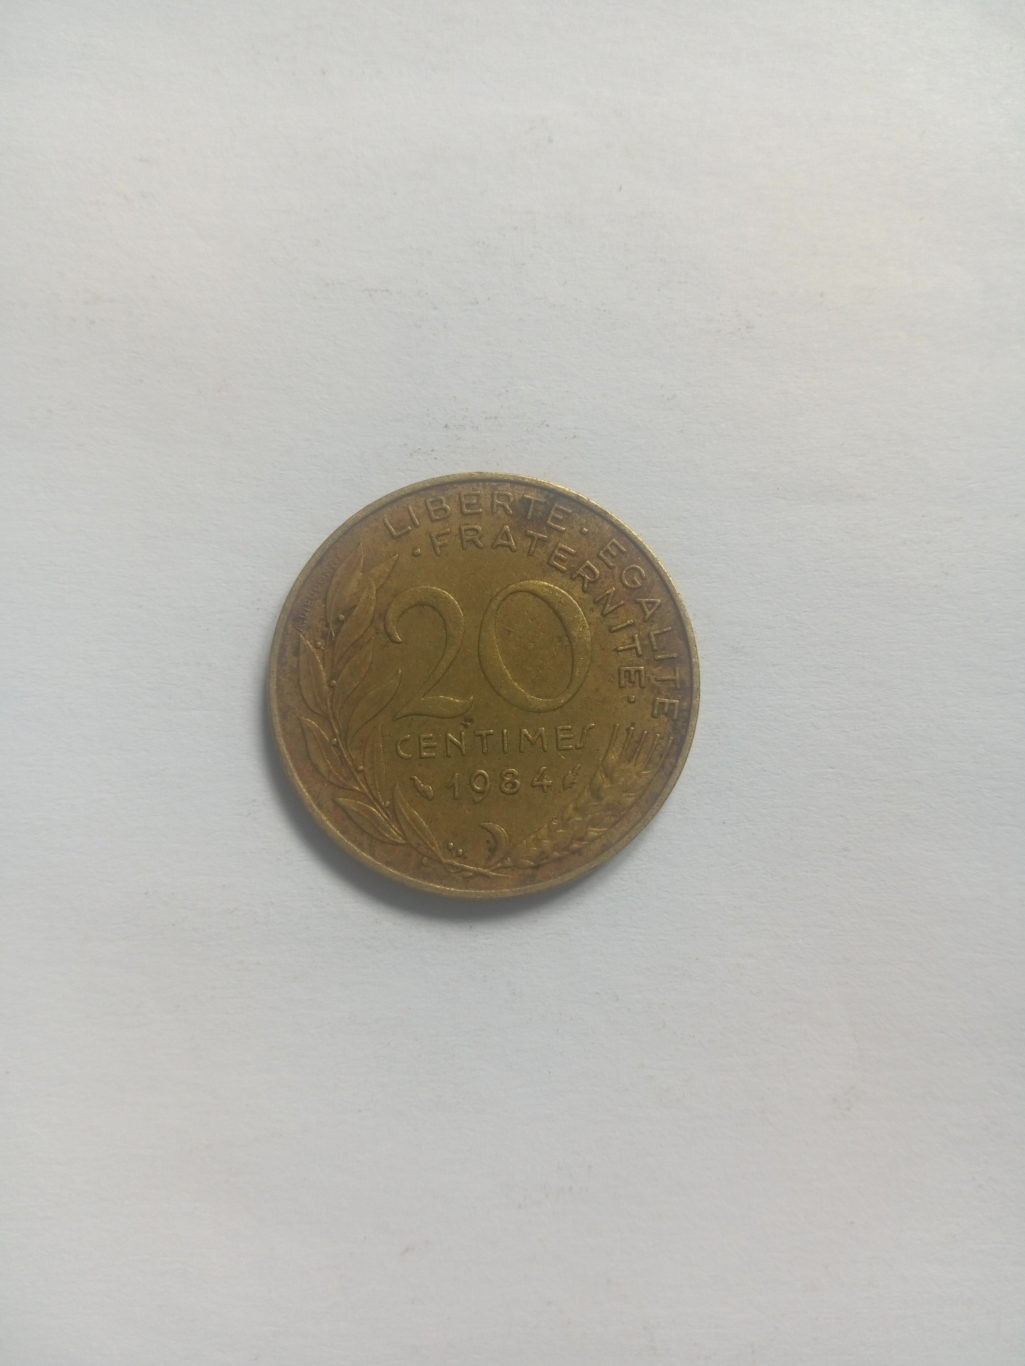 1984_republique francaise 20 centimes